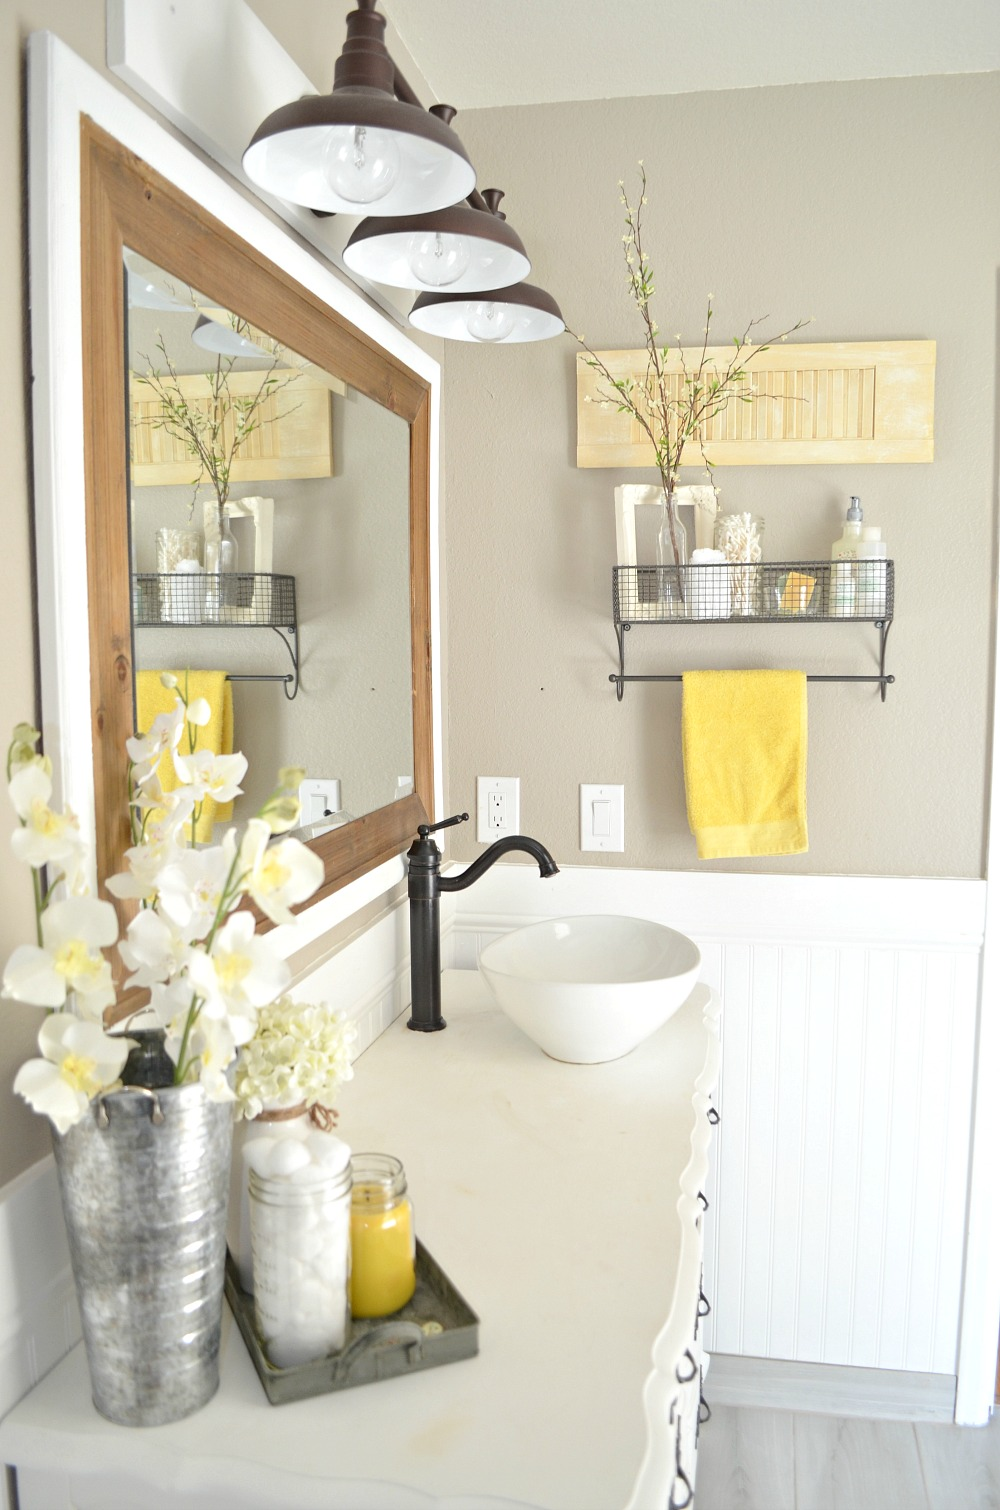 decorative bathroom ideas how to easily mix vintage and modern decor little vintage nest 384